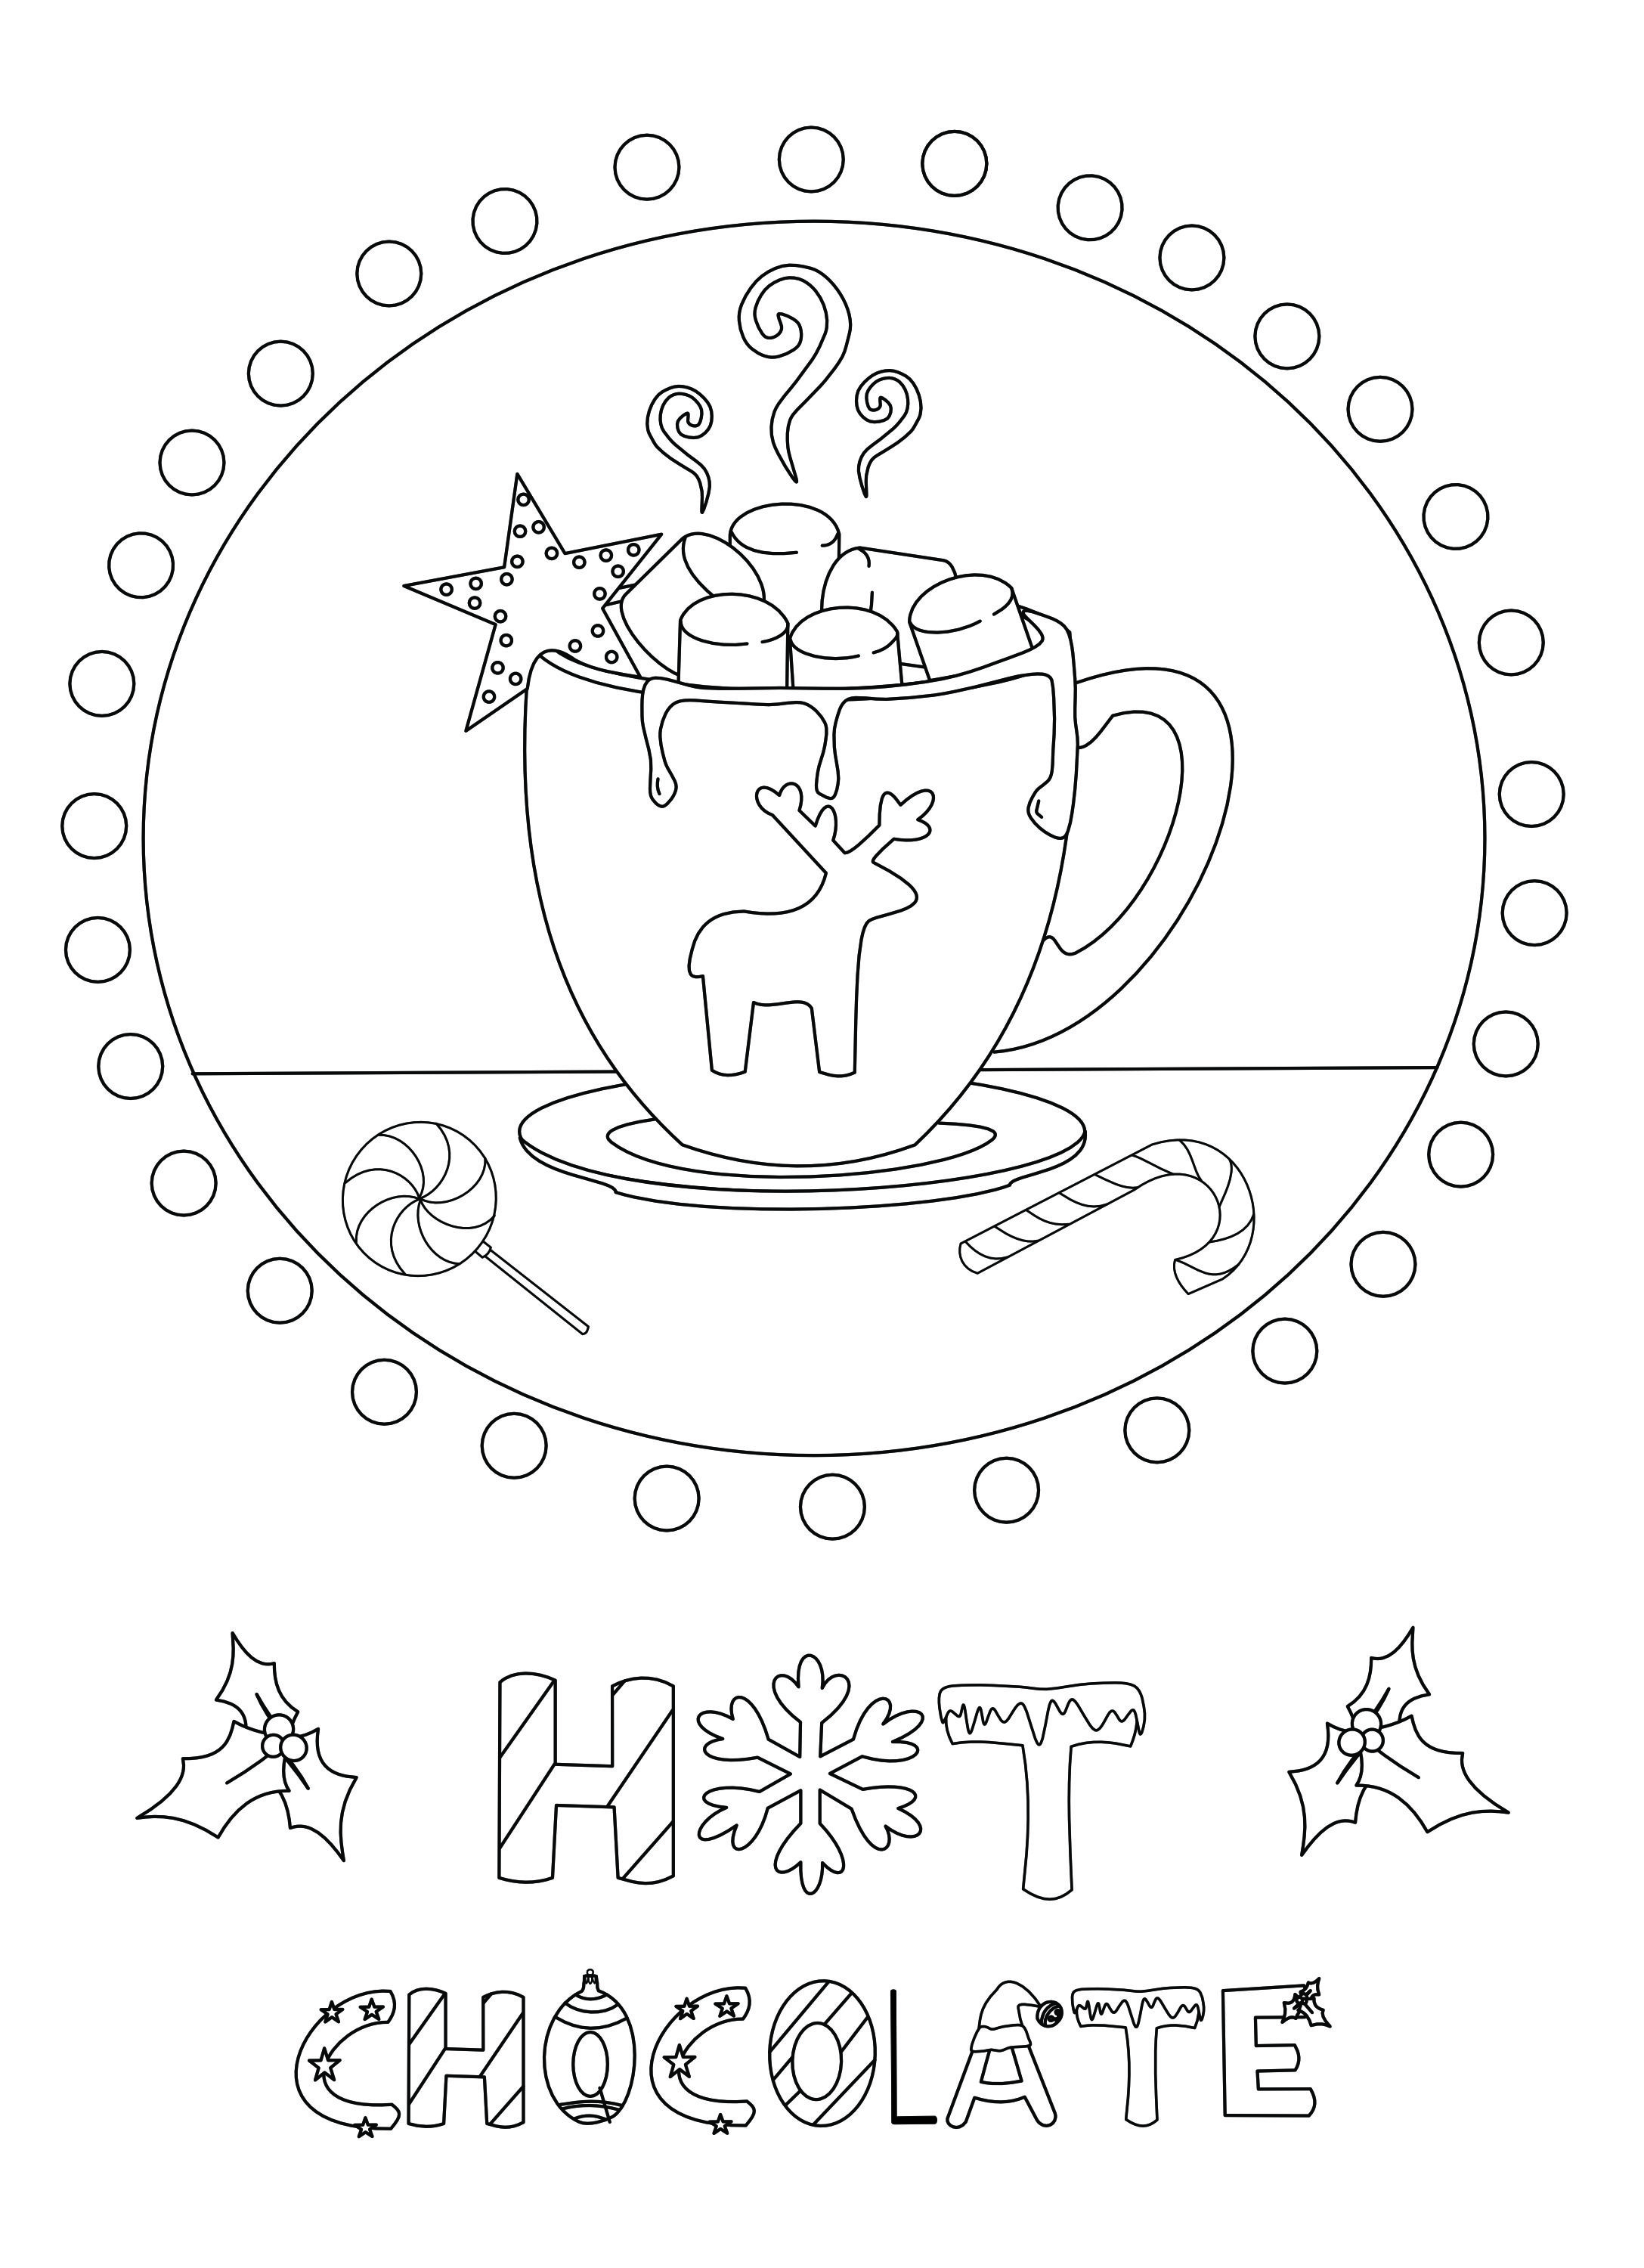 Free Printable Hot Chocolate Coloring Page From The